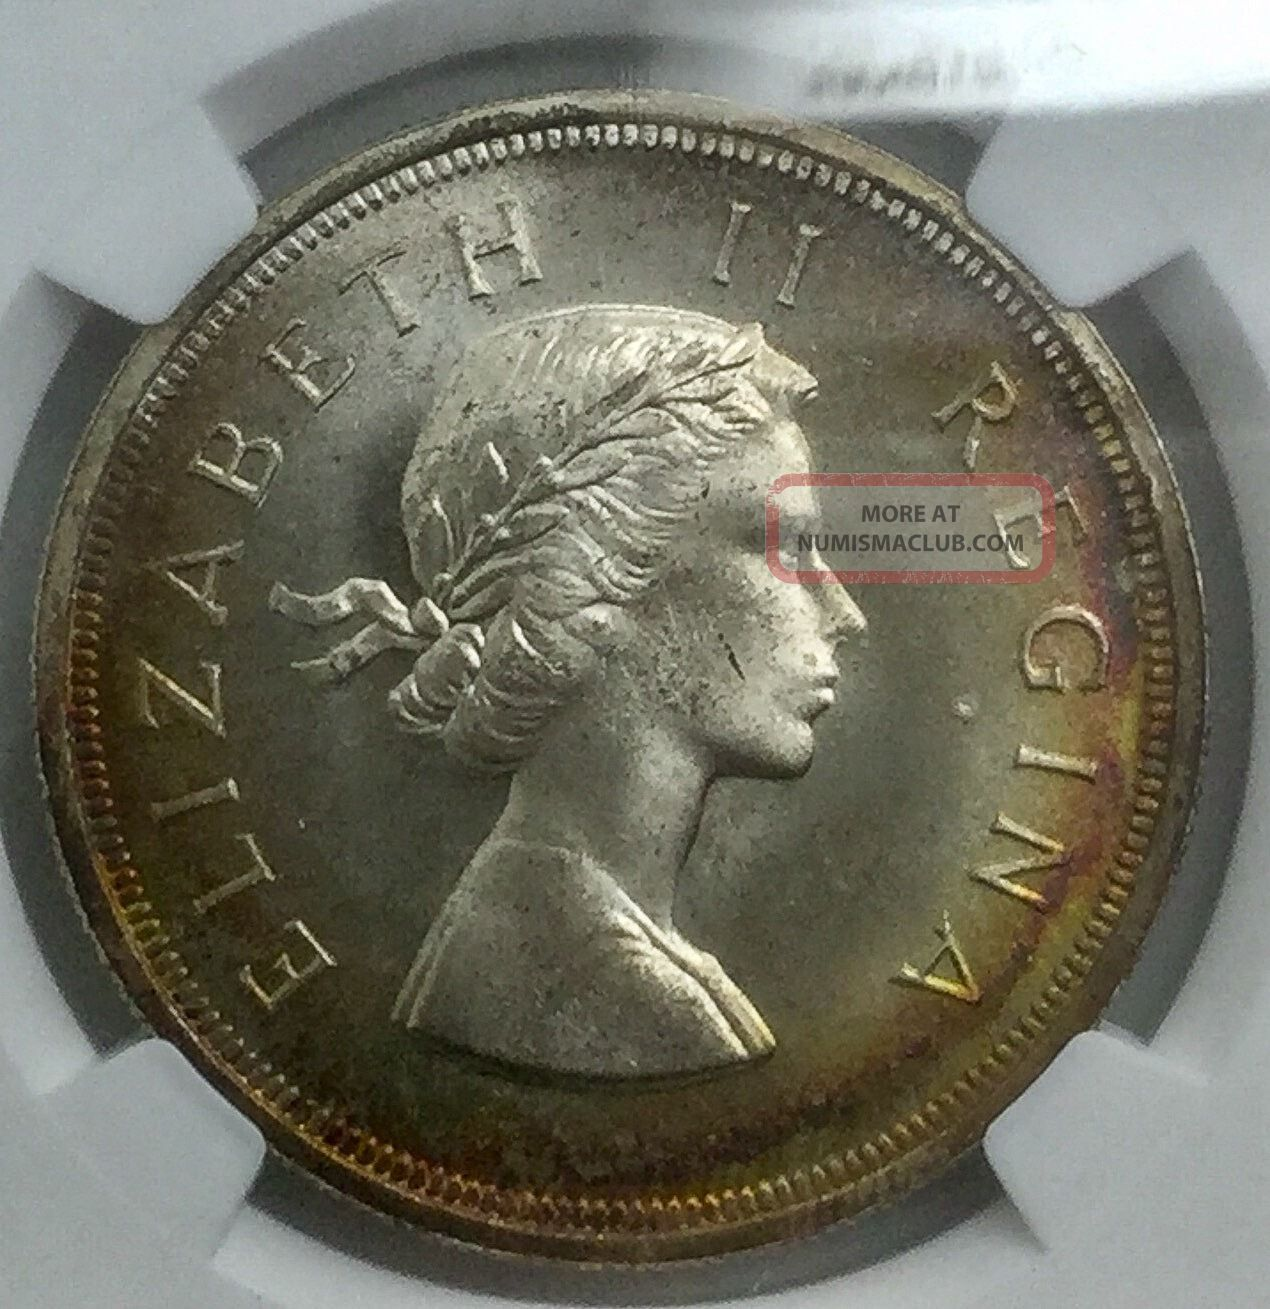 South Africa 1953 Elizabeth Ii Ngc Pl67 Graded 5 Shilling Toner Africa photo